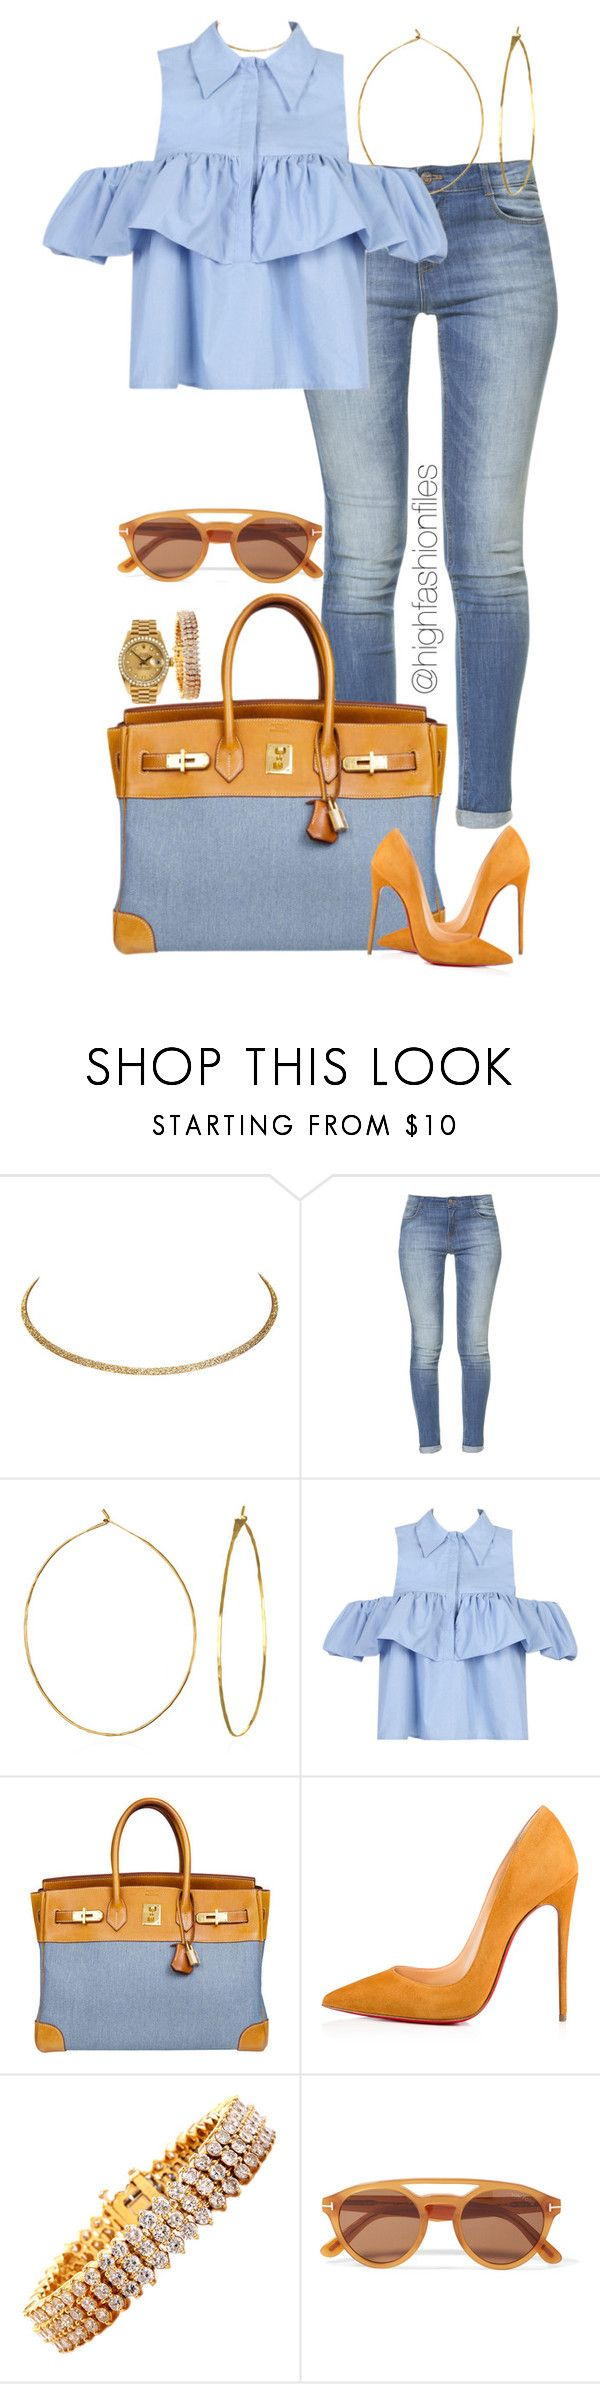 """""""Untitled #2734"""" by highfashionfiles ❤ liked on Polyvore featuring Wet Seal, Zara, Phyllis + Rosie, WithChic, Hermès, Christian Louboutin, Rolex, Jose Hess and Tom Ford"""